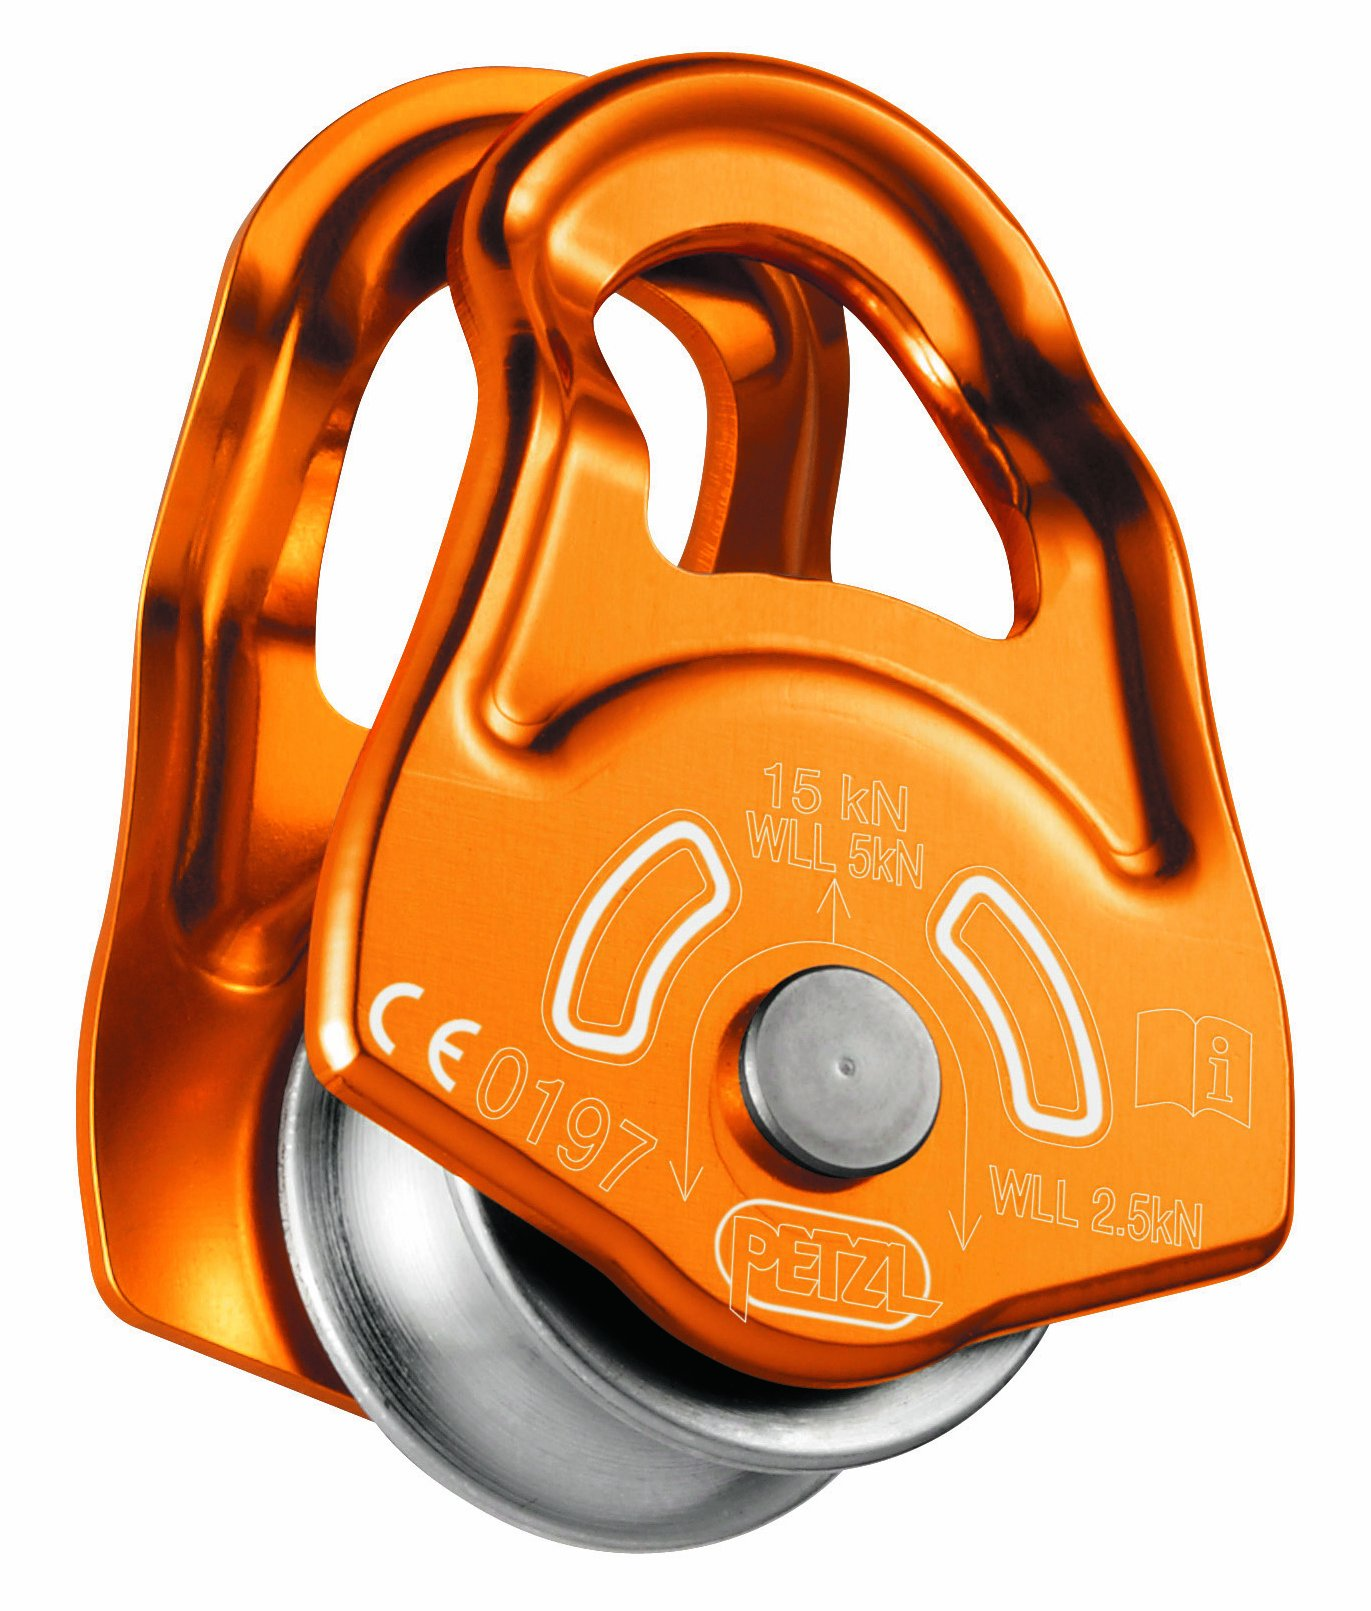 PETZL - Mobile, Versatile Ultracompact Pulley by PETZL